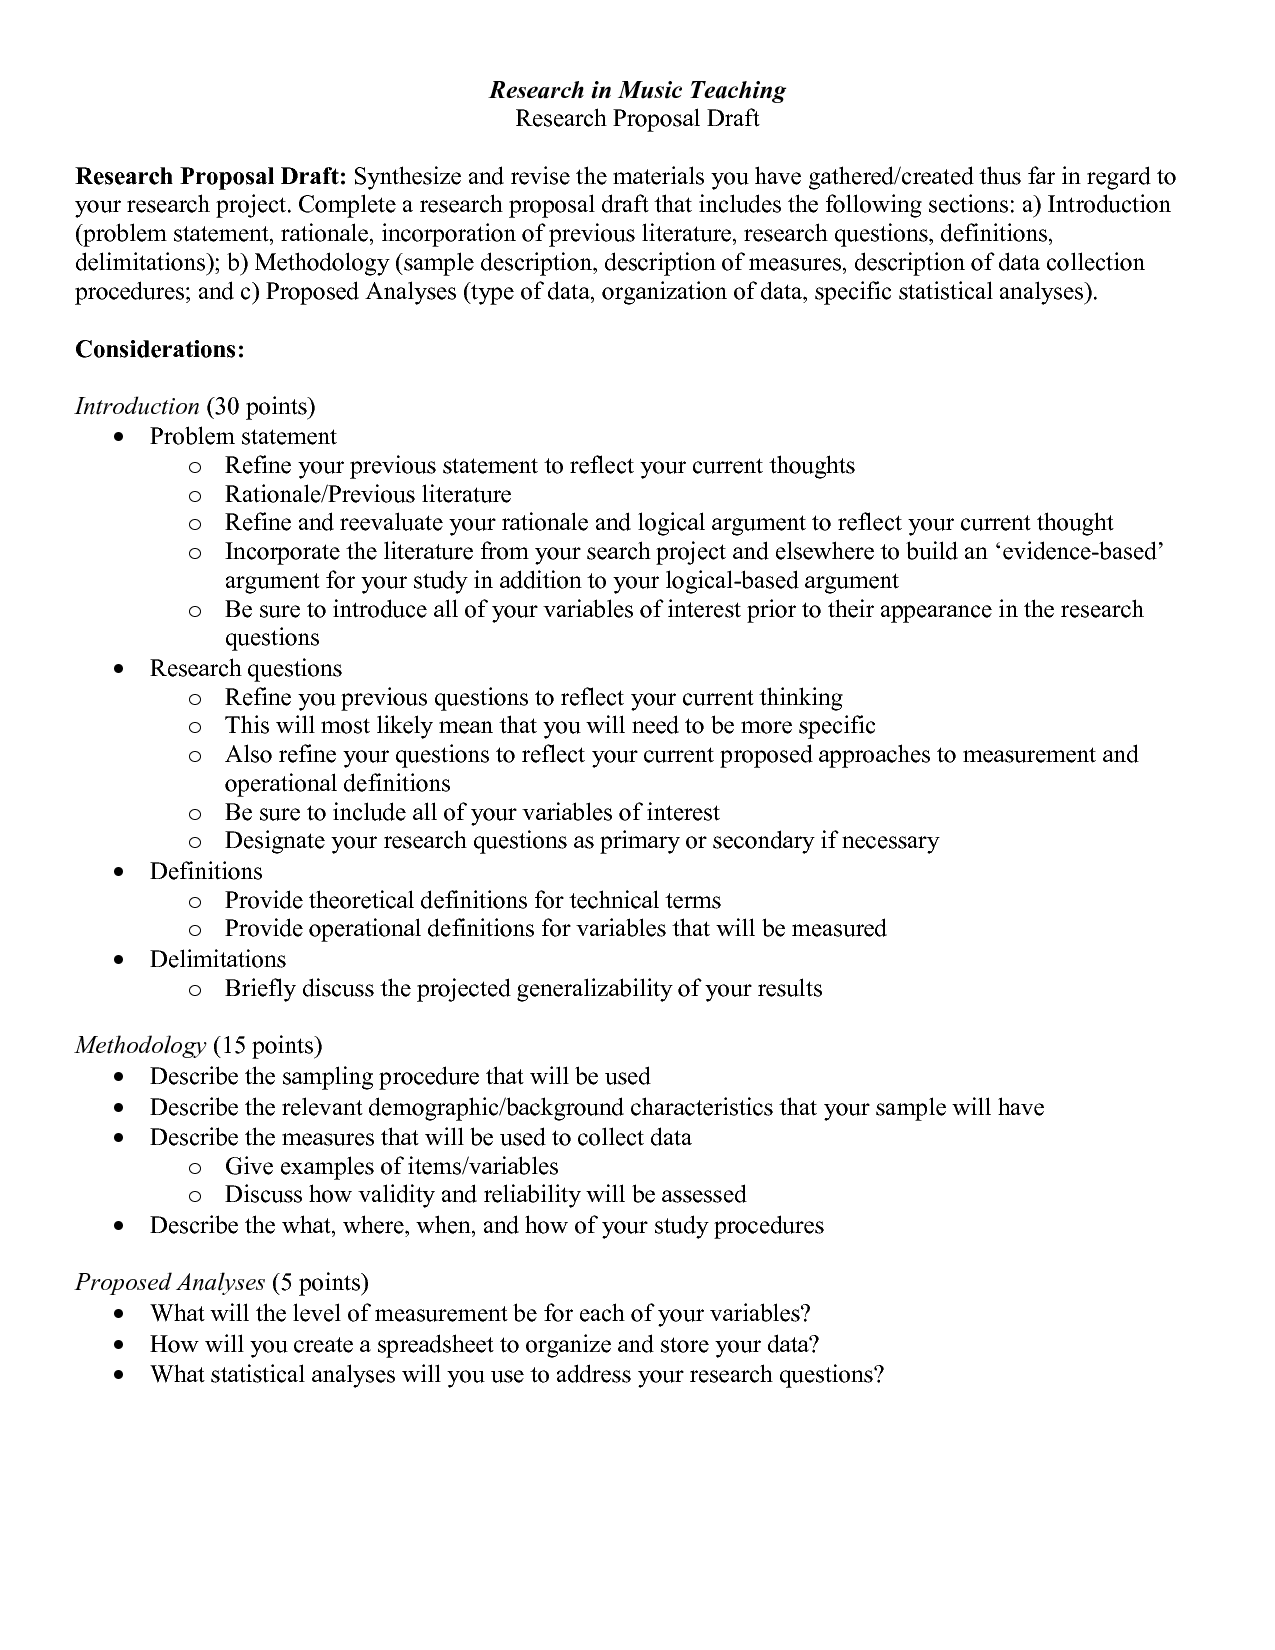 Raisin In The Sun Essay Writing Methodology For Research Proposal Example Discussion Essay also Great Gatsby Theme Essay Writing Methodology For Research Proposal  Research  Pinterest  Interesting Topics For A Persuasive Essay